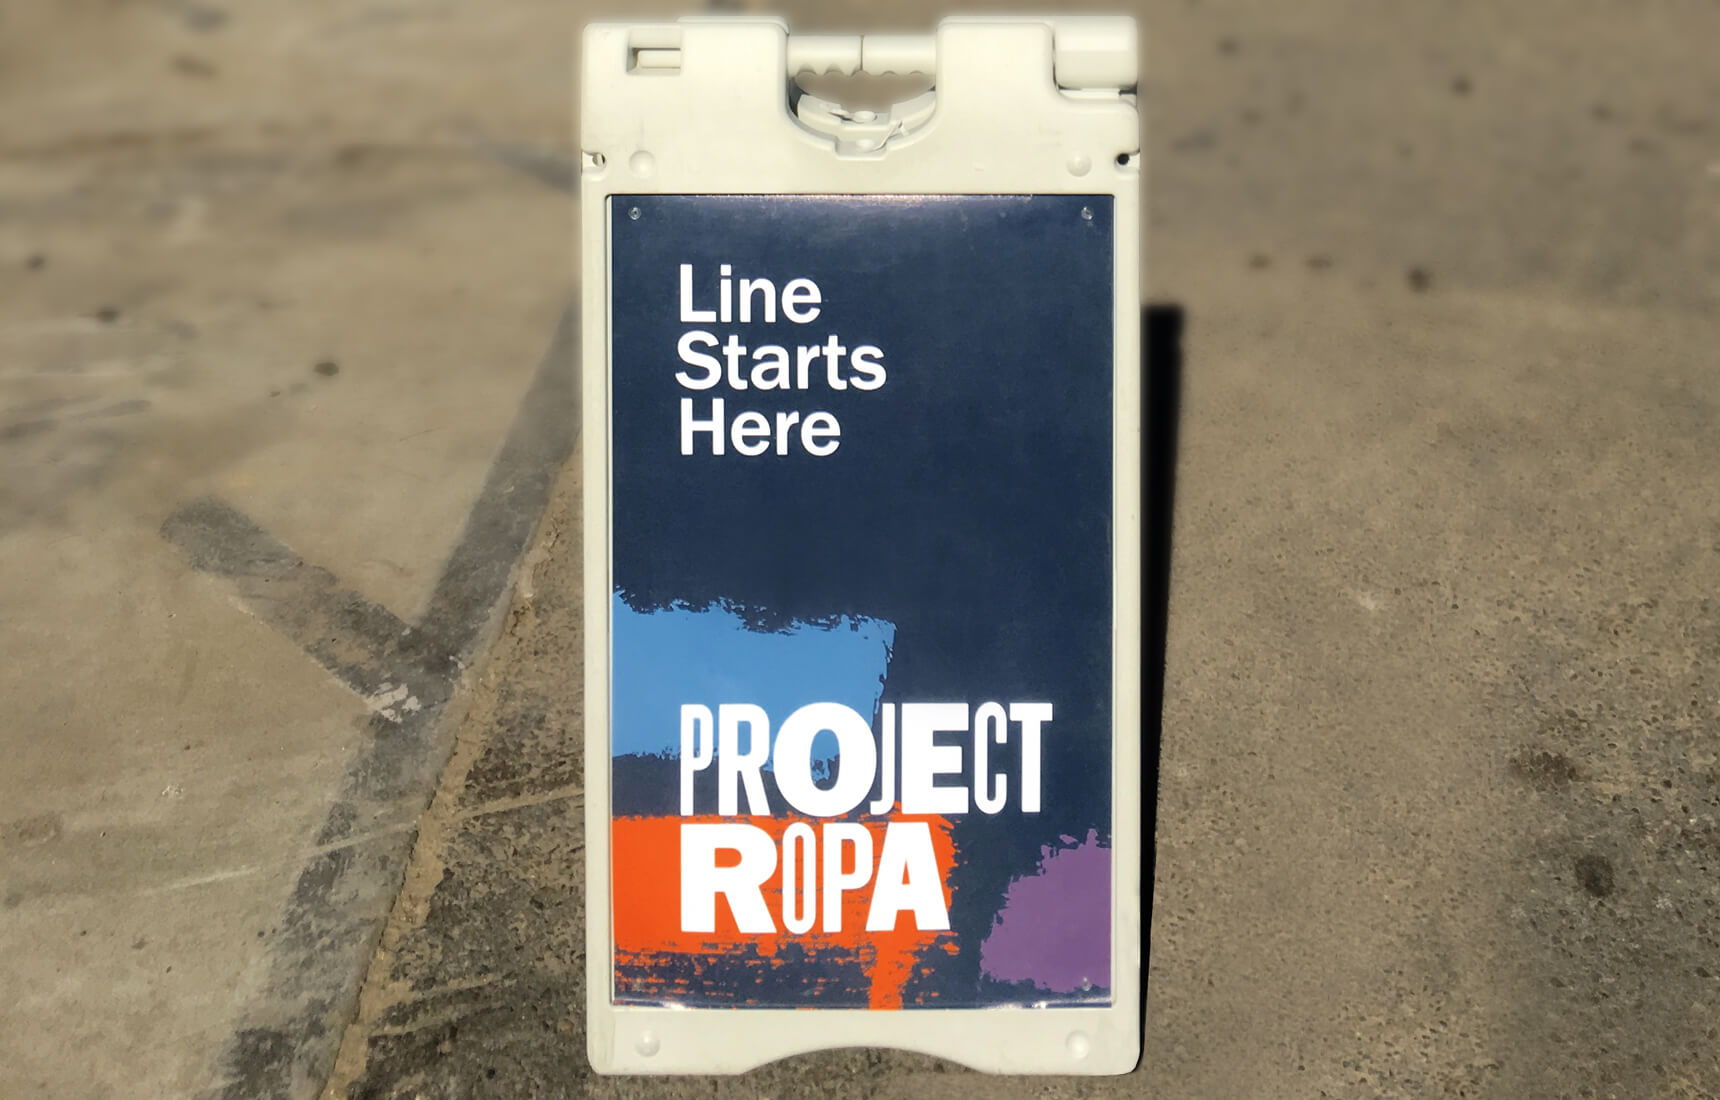 A-frame standing sign for Project Ropa.